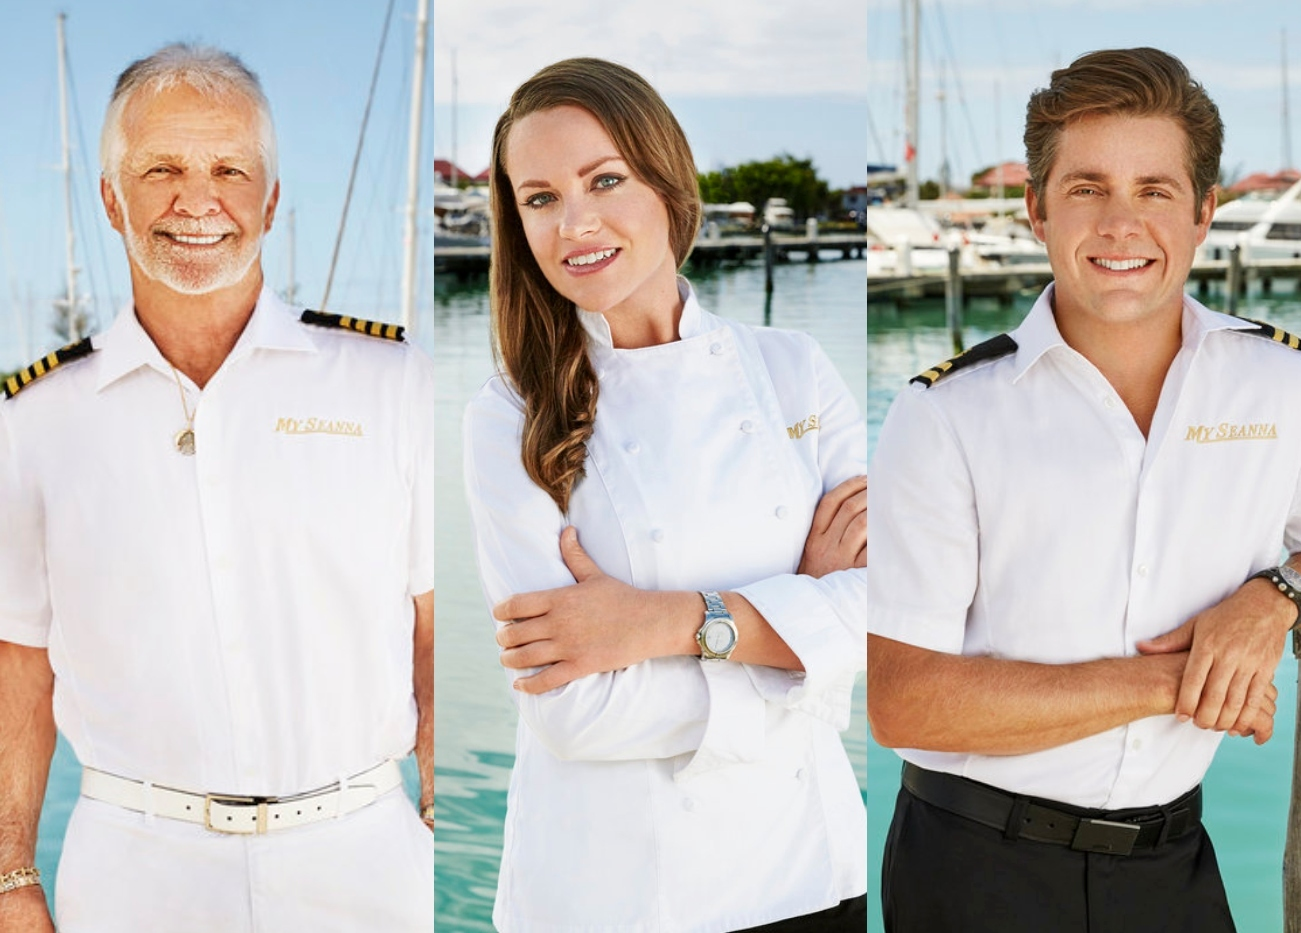 VIDEO: Watch Below Deck Season 9 Trailer! Captain Lee is Stranded as New Captain Takes Charge, Chef Rachel and Eddie Attempt to Rehash Old Feud, a Boatmance is Teased, Plus Crew Fired?